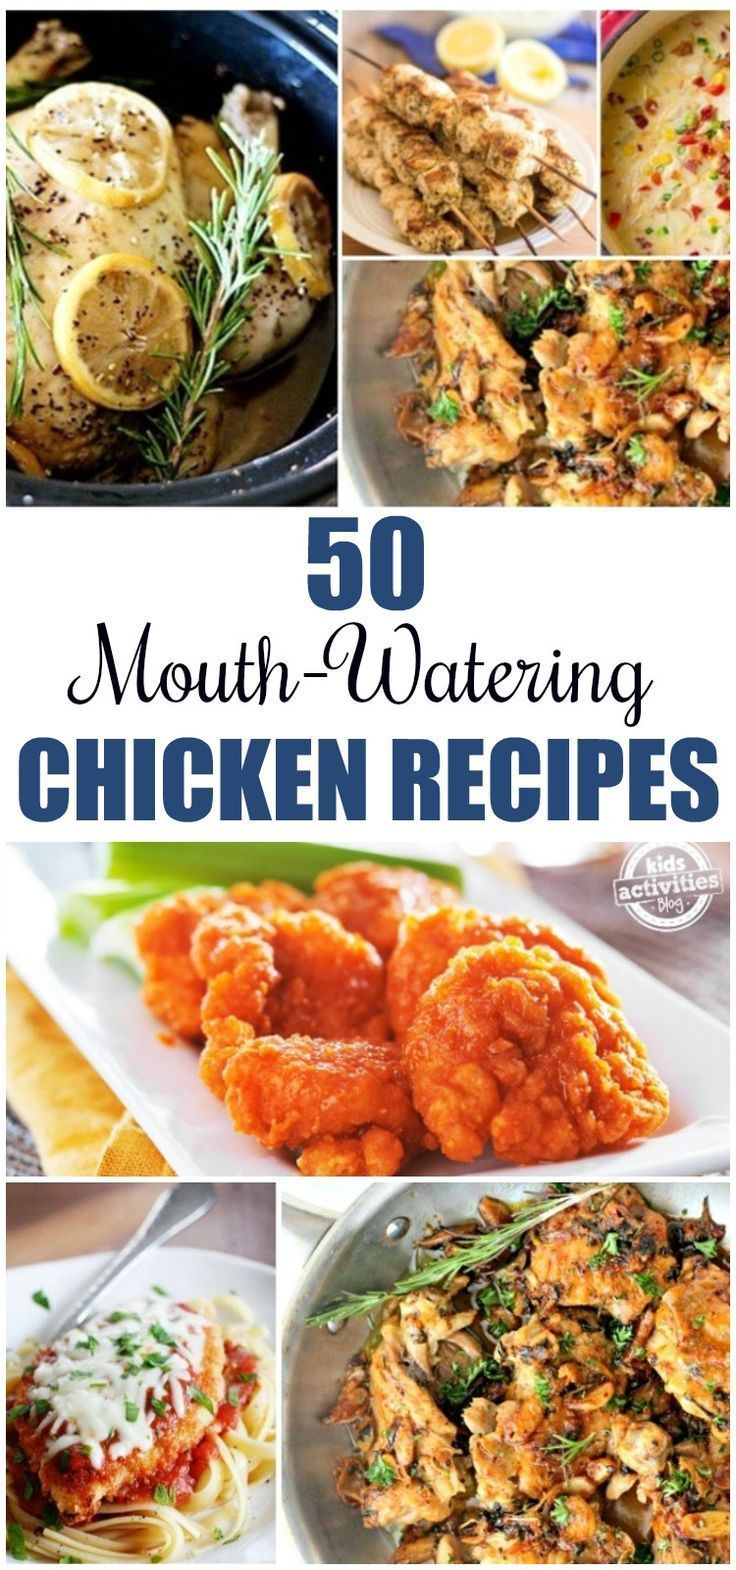 50 Mouth-Watering Chicken Recipes - Kids Activities